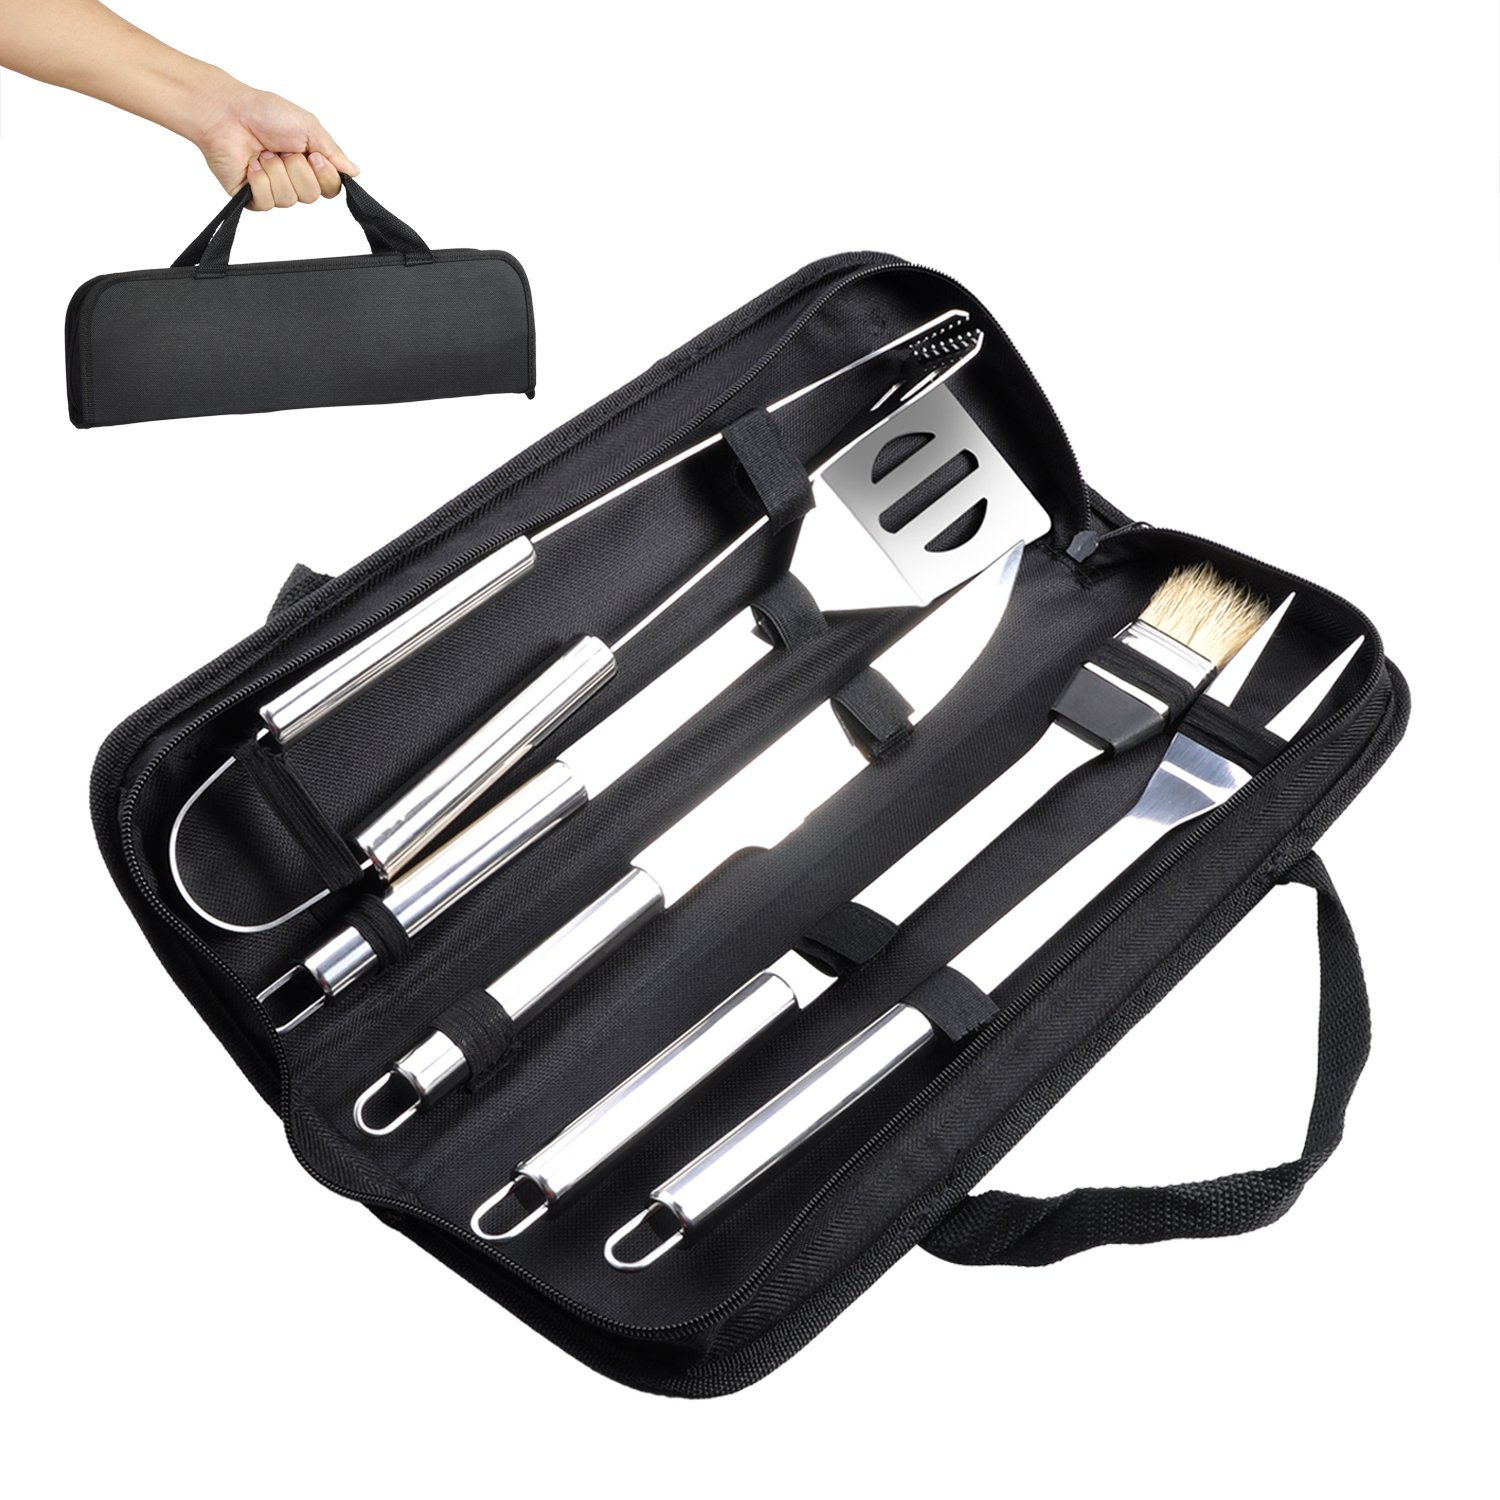 Professional grade stainless steel bbq grill tools set